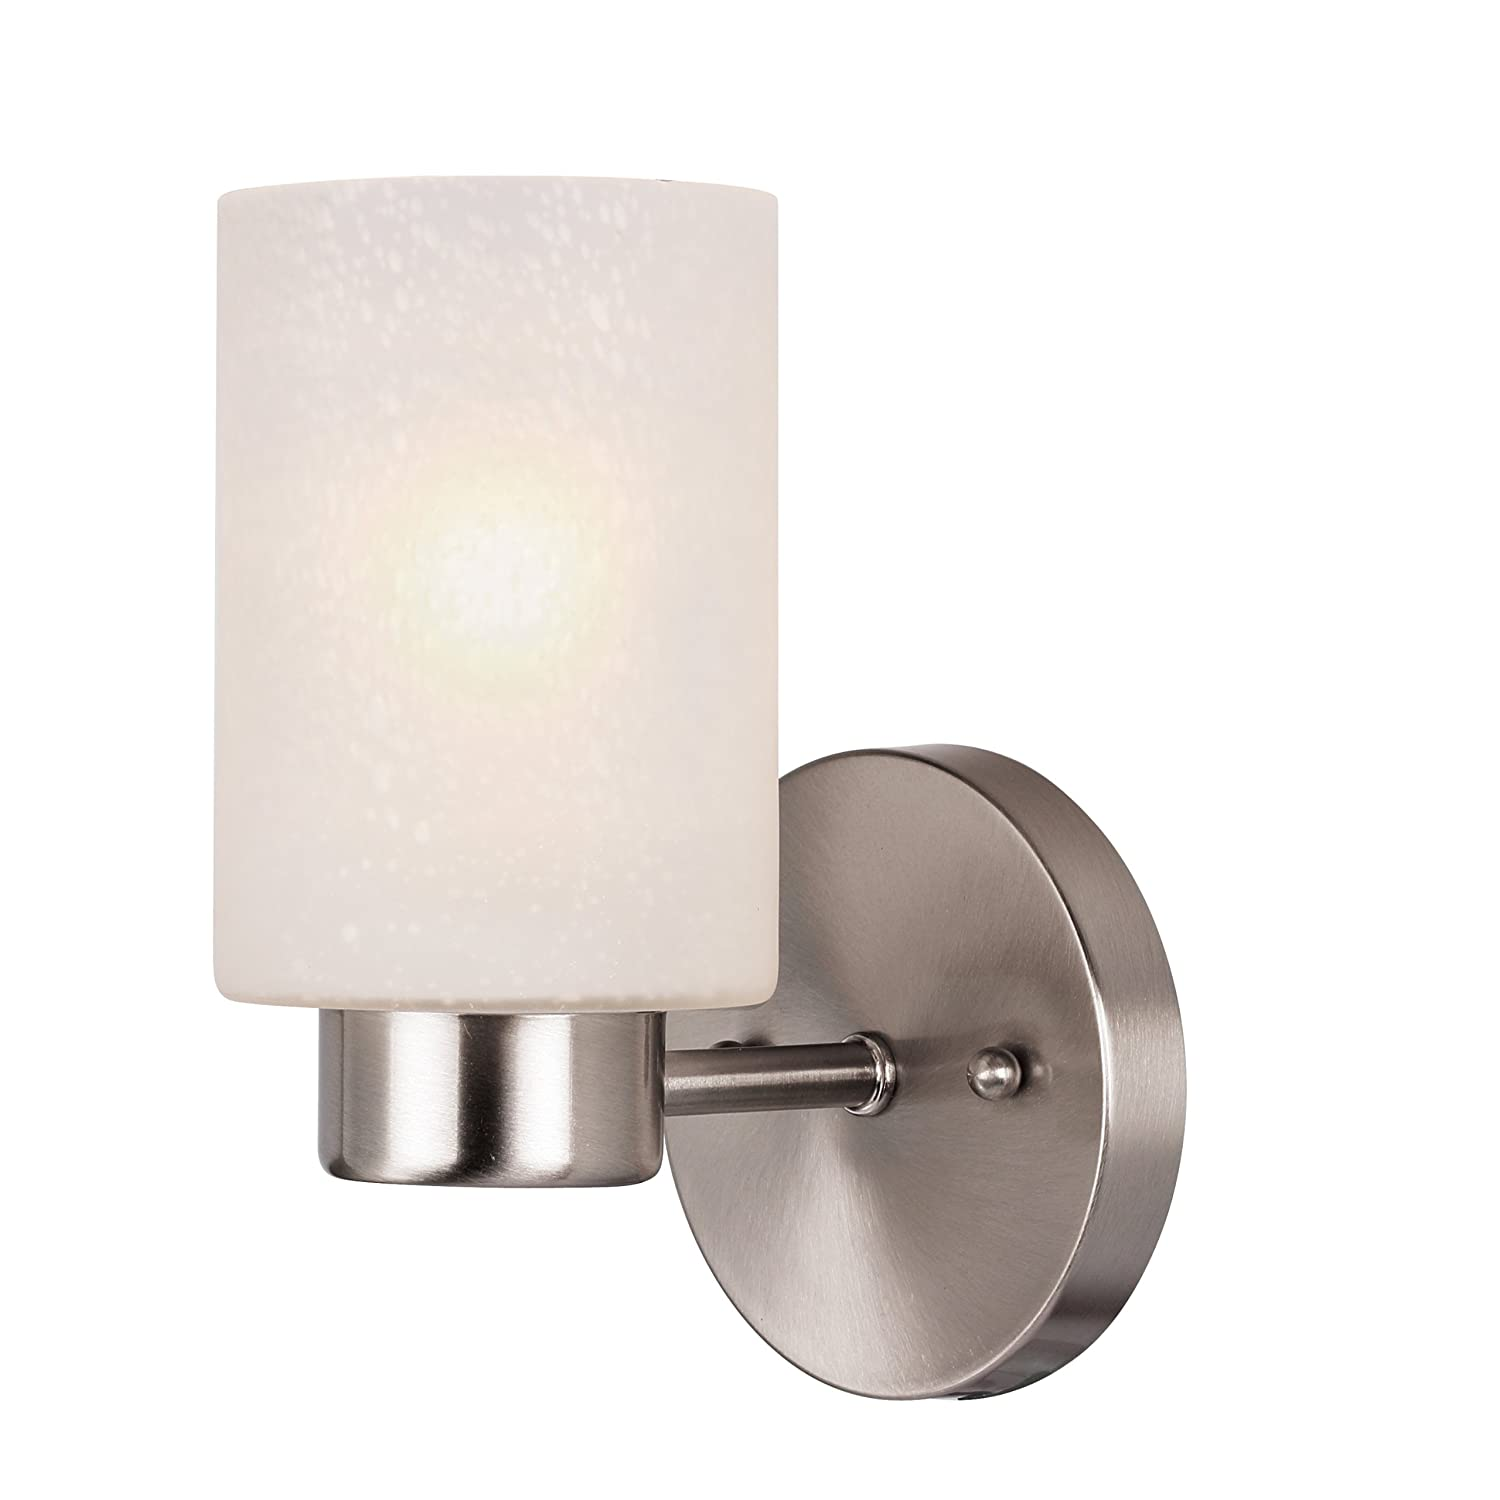 Westinghouse 6227800 Sylvestre One Light Interior Wall Fixture  Brushed  Nickel Finish with Frosted Seeded Glass   Wall Sconces   Amazon comWestinghouse 6227800 Sylvestre One Light Interior Wall Fixture  . Bathroom 1 Light Sconces. Home Design Ideas